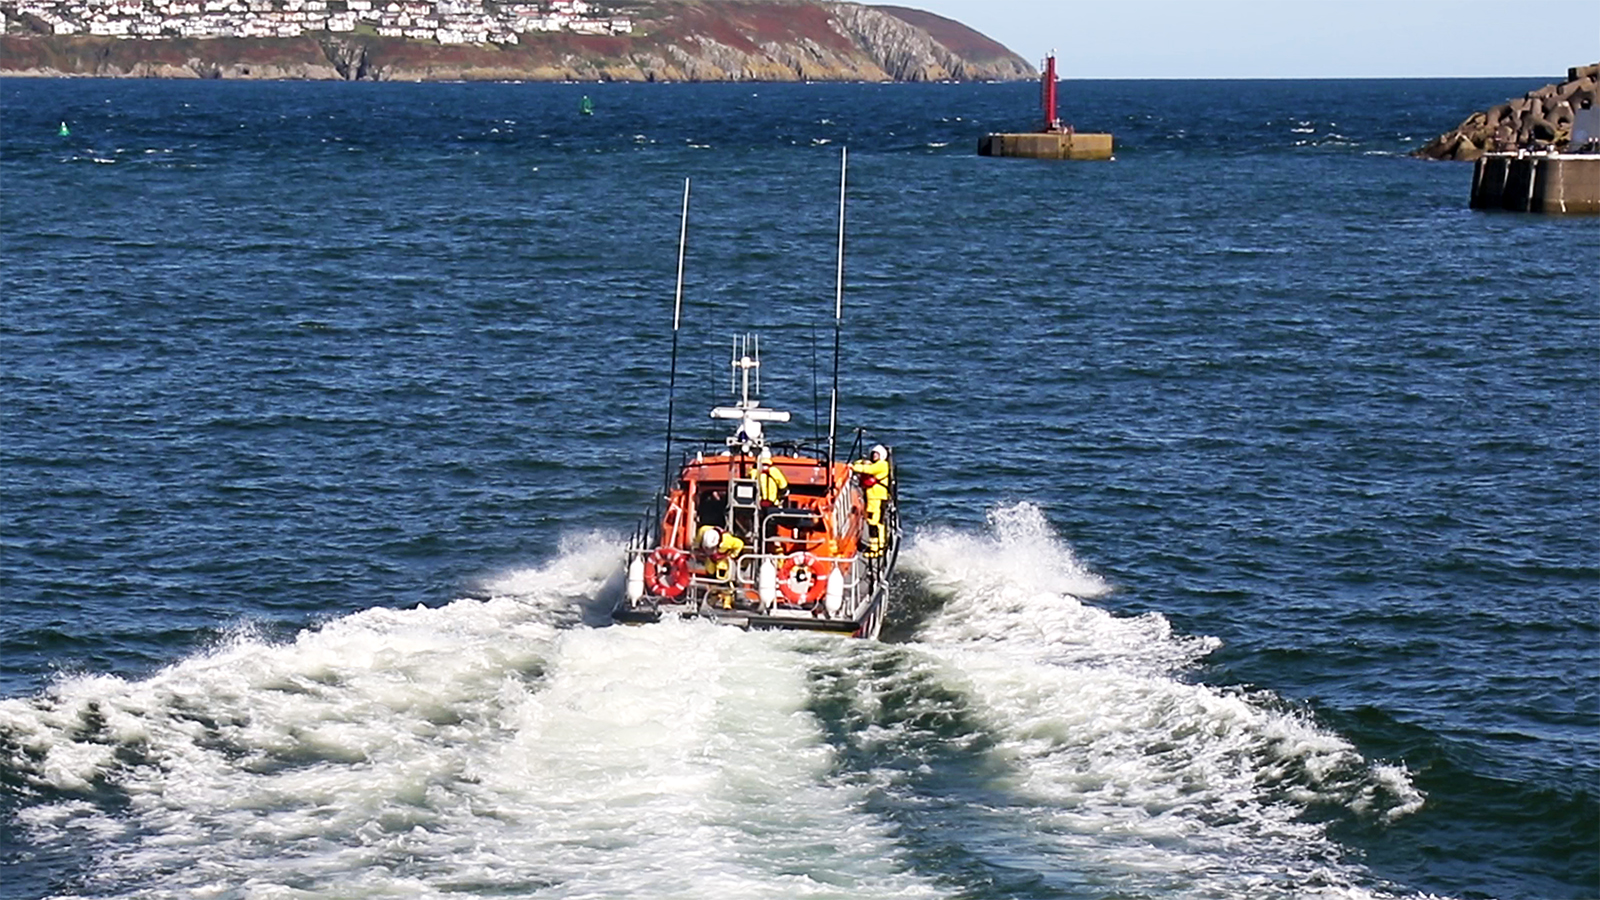 Launch of Douglas all-weather lifeboat, Marine Engineer